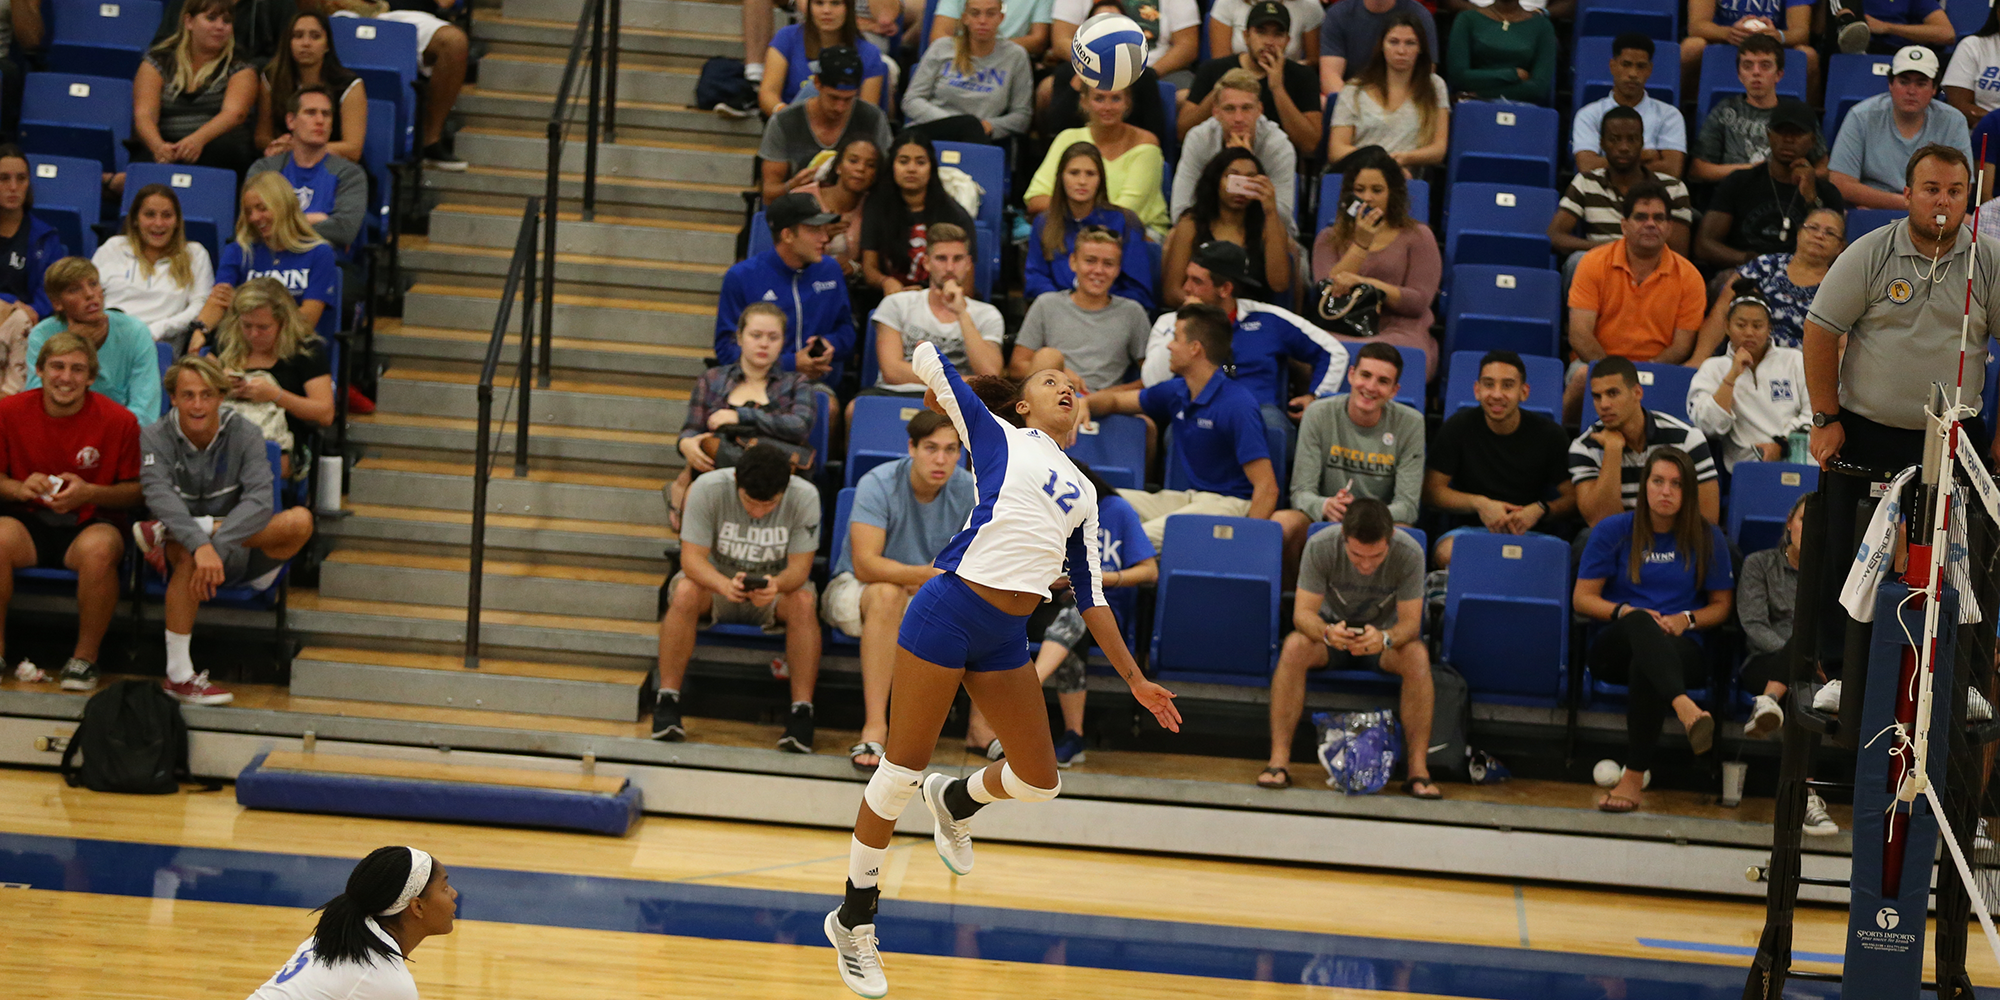 Panthers Halt Volleyball's Comeback Bid with Strong Final Frame